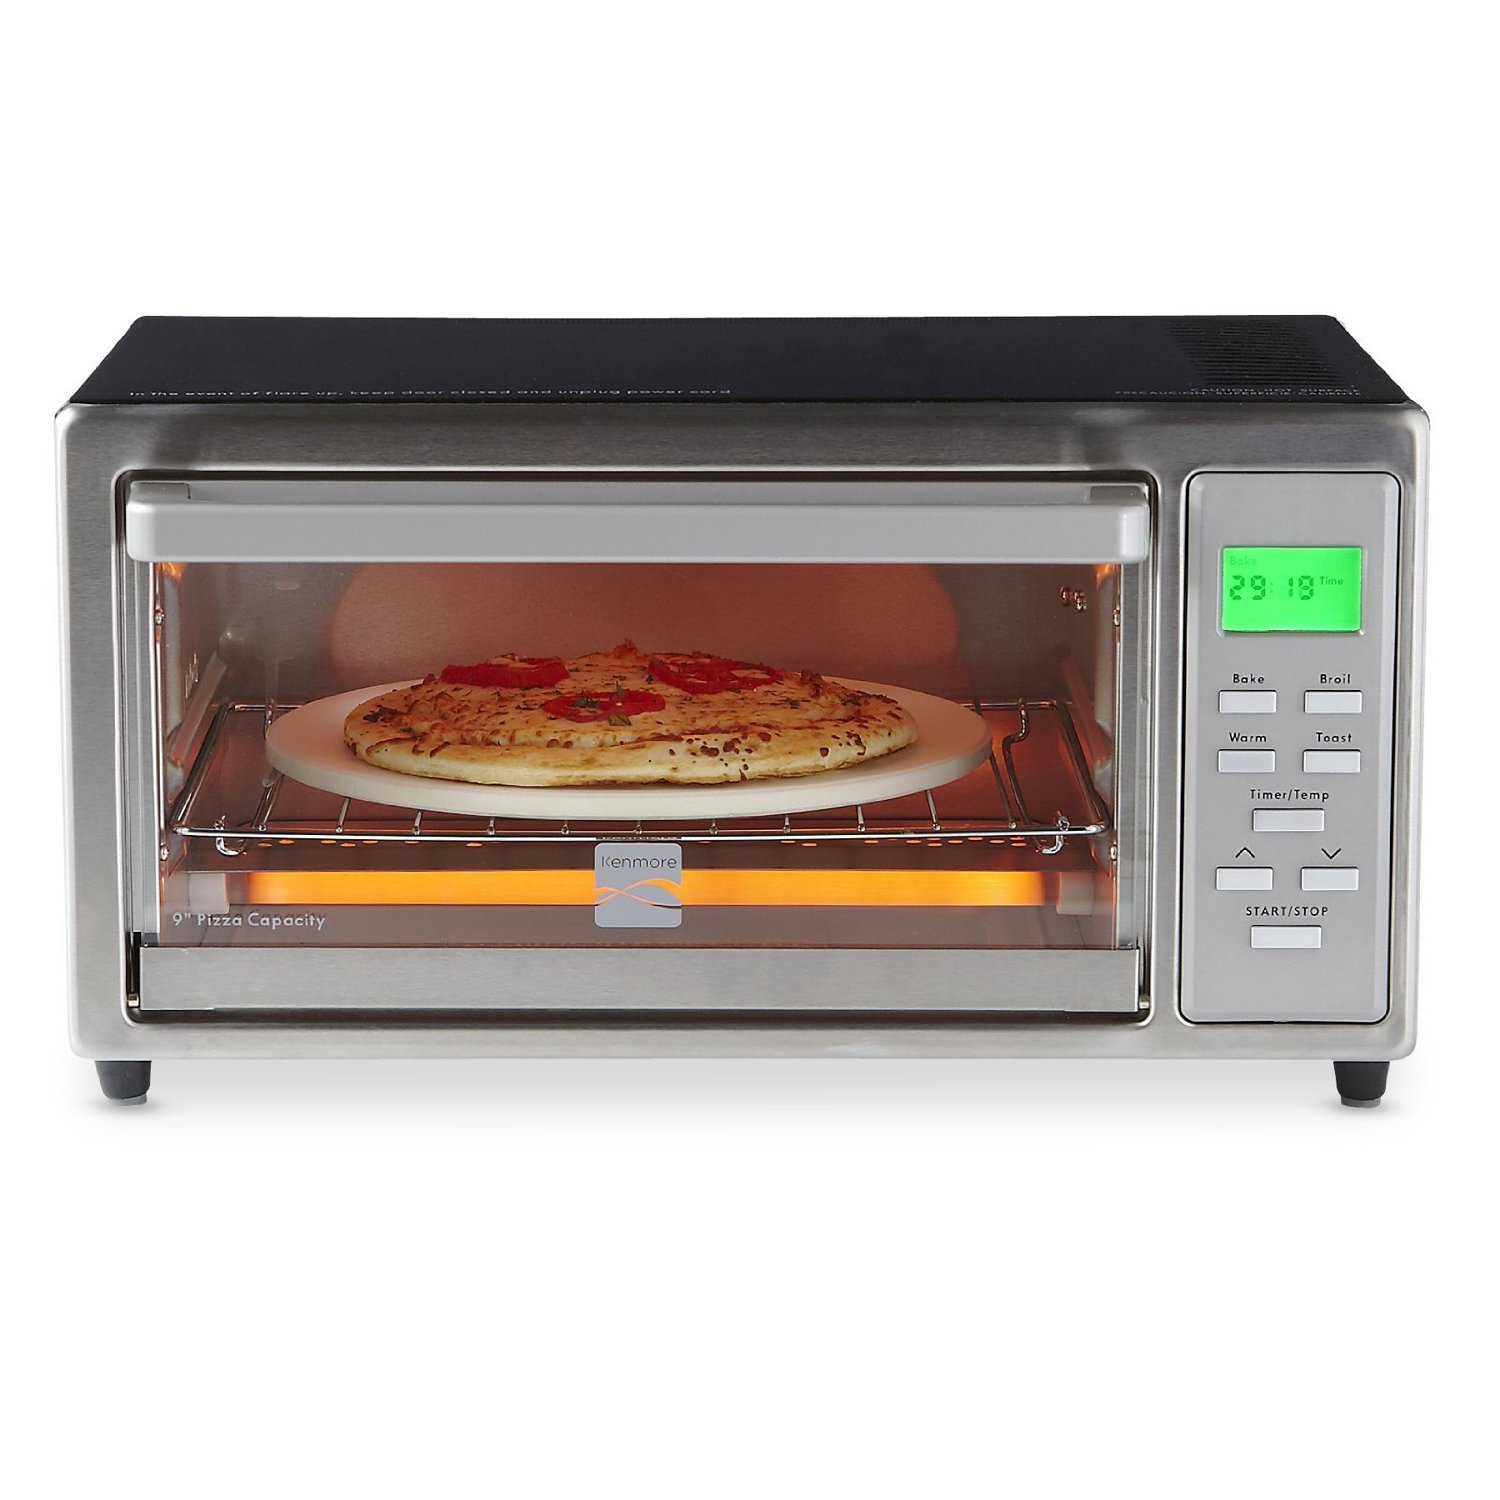 reviews product oven professional stainless frigidaire walmart steel com infrared convection slice toaster